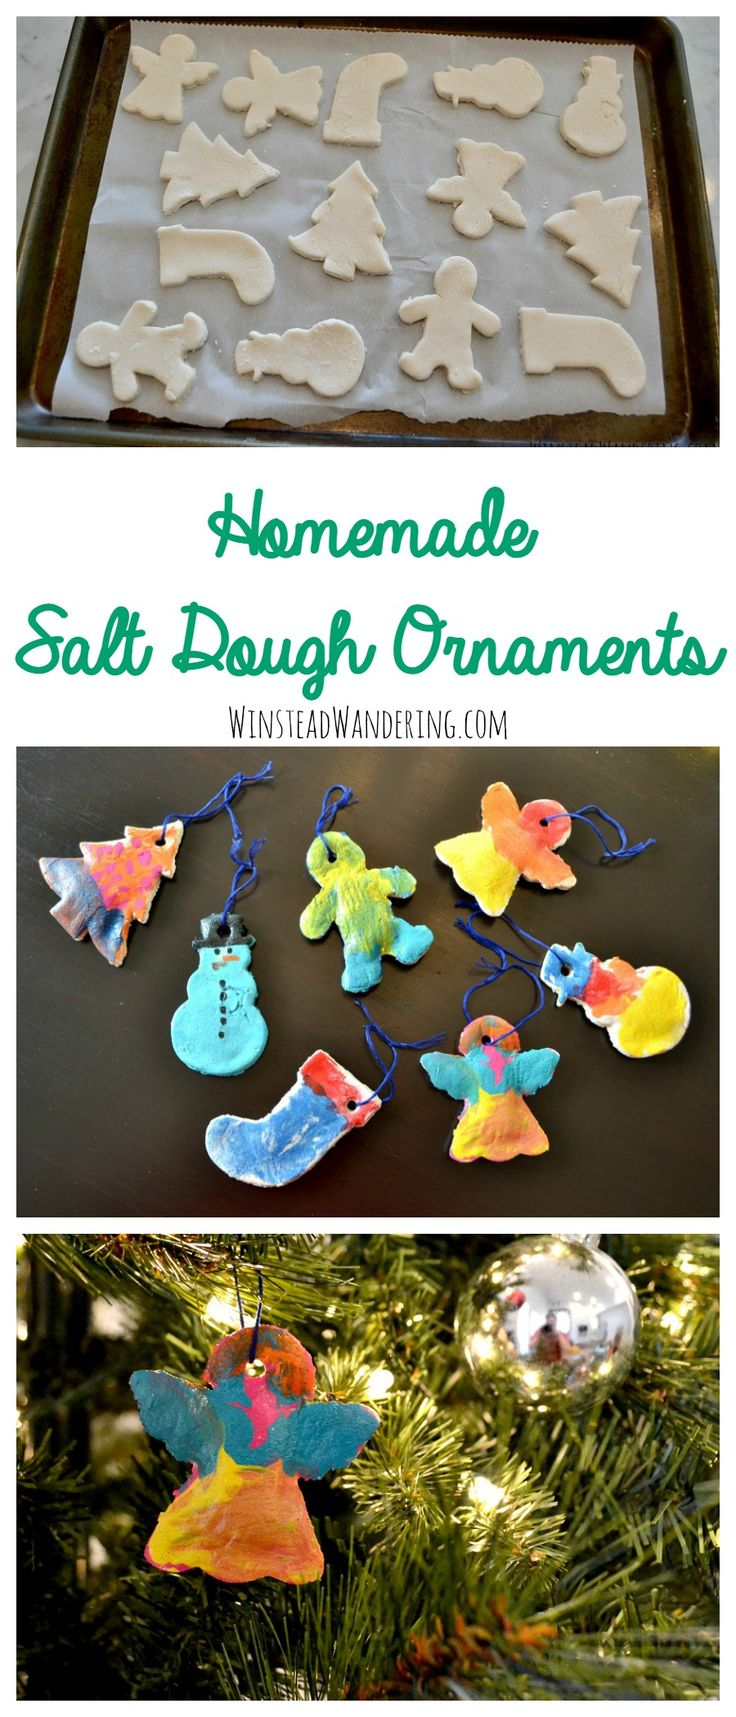 DIY Craft: Homemade salt dough ornaments couldn't be simpler to make. With only three ingredients, they're the perfect easy craft for kids of all ages.